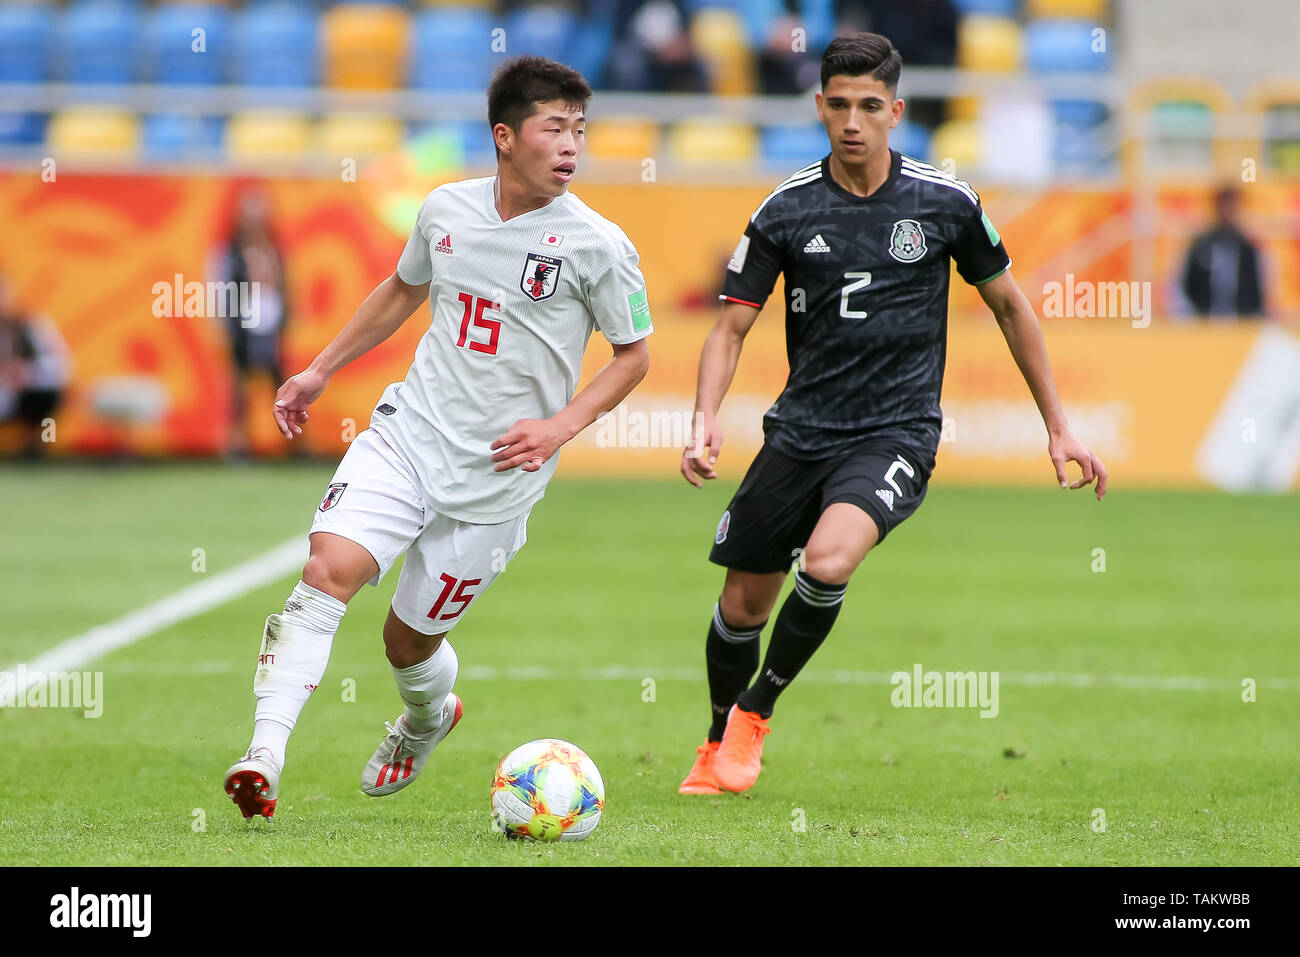 Gdynia Stadium, Gdynia, Poland - 26th May, 2019: Toichi Suzuki(L) from Japan and Kevin Alvarez (R) from Mexico are seen in action during FIFA U-20 World Cup match between Mexico and Japan (GROUP B) in Gdynia. (Final score; Mexico 0:3 Japan) - Stock Image